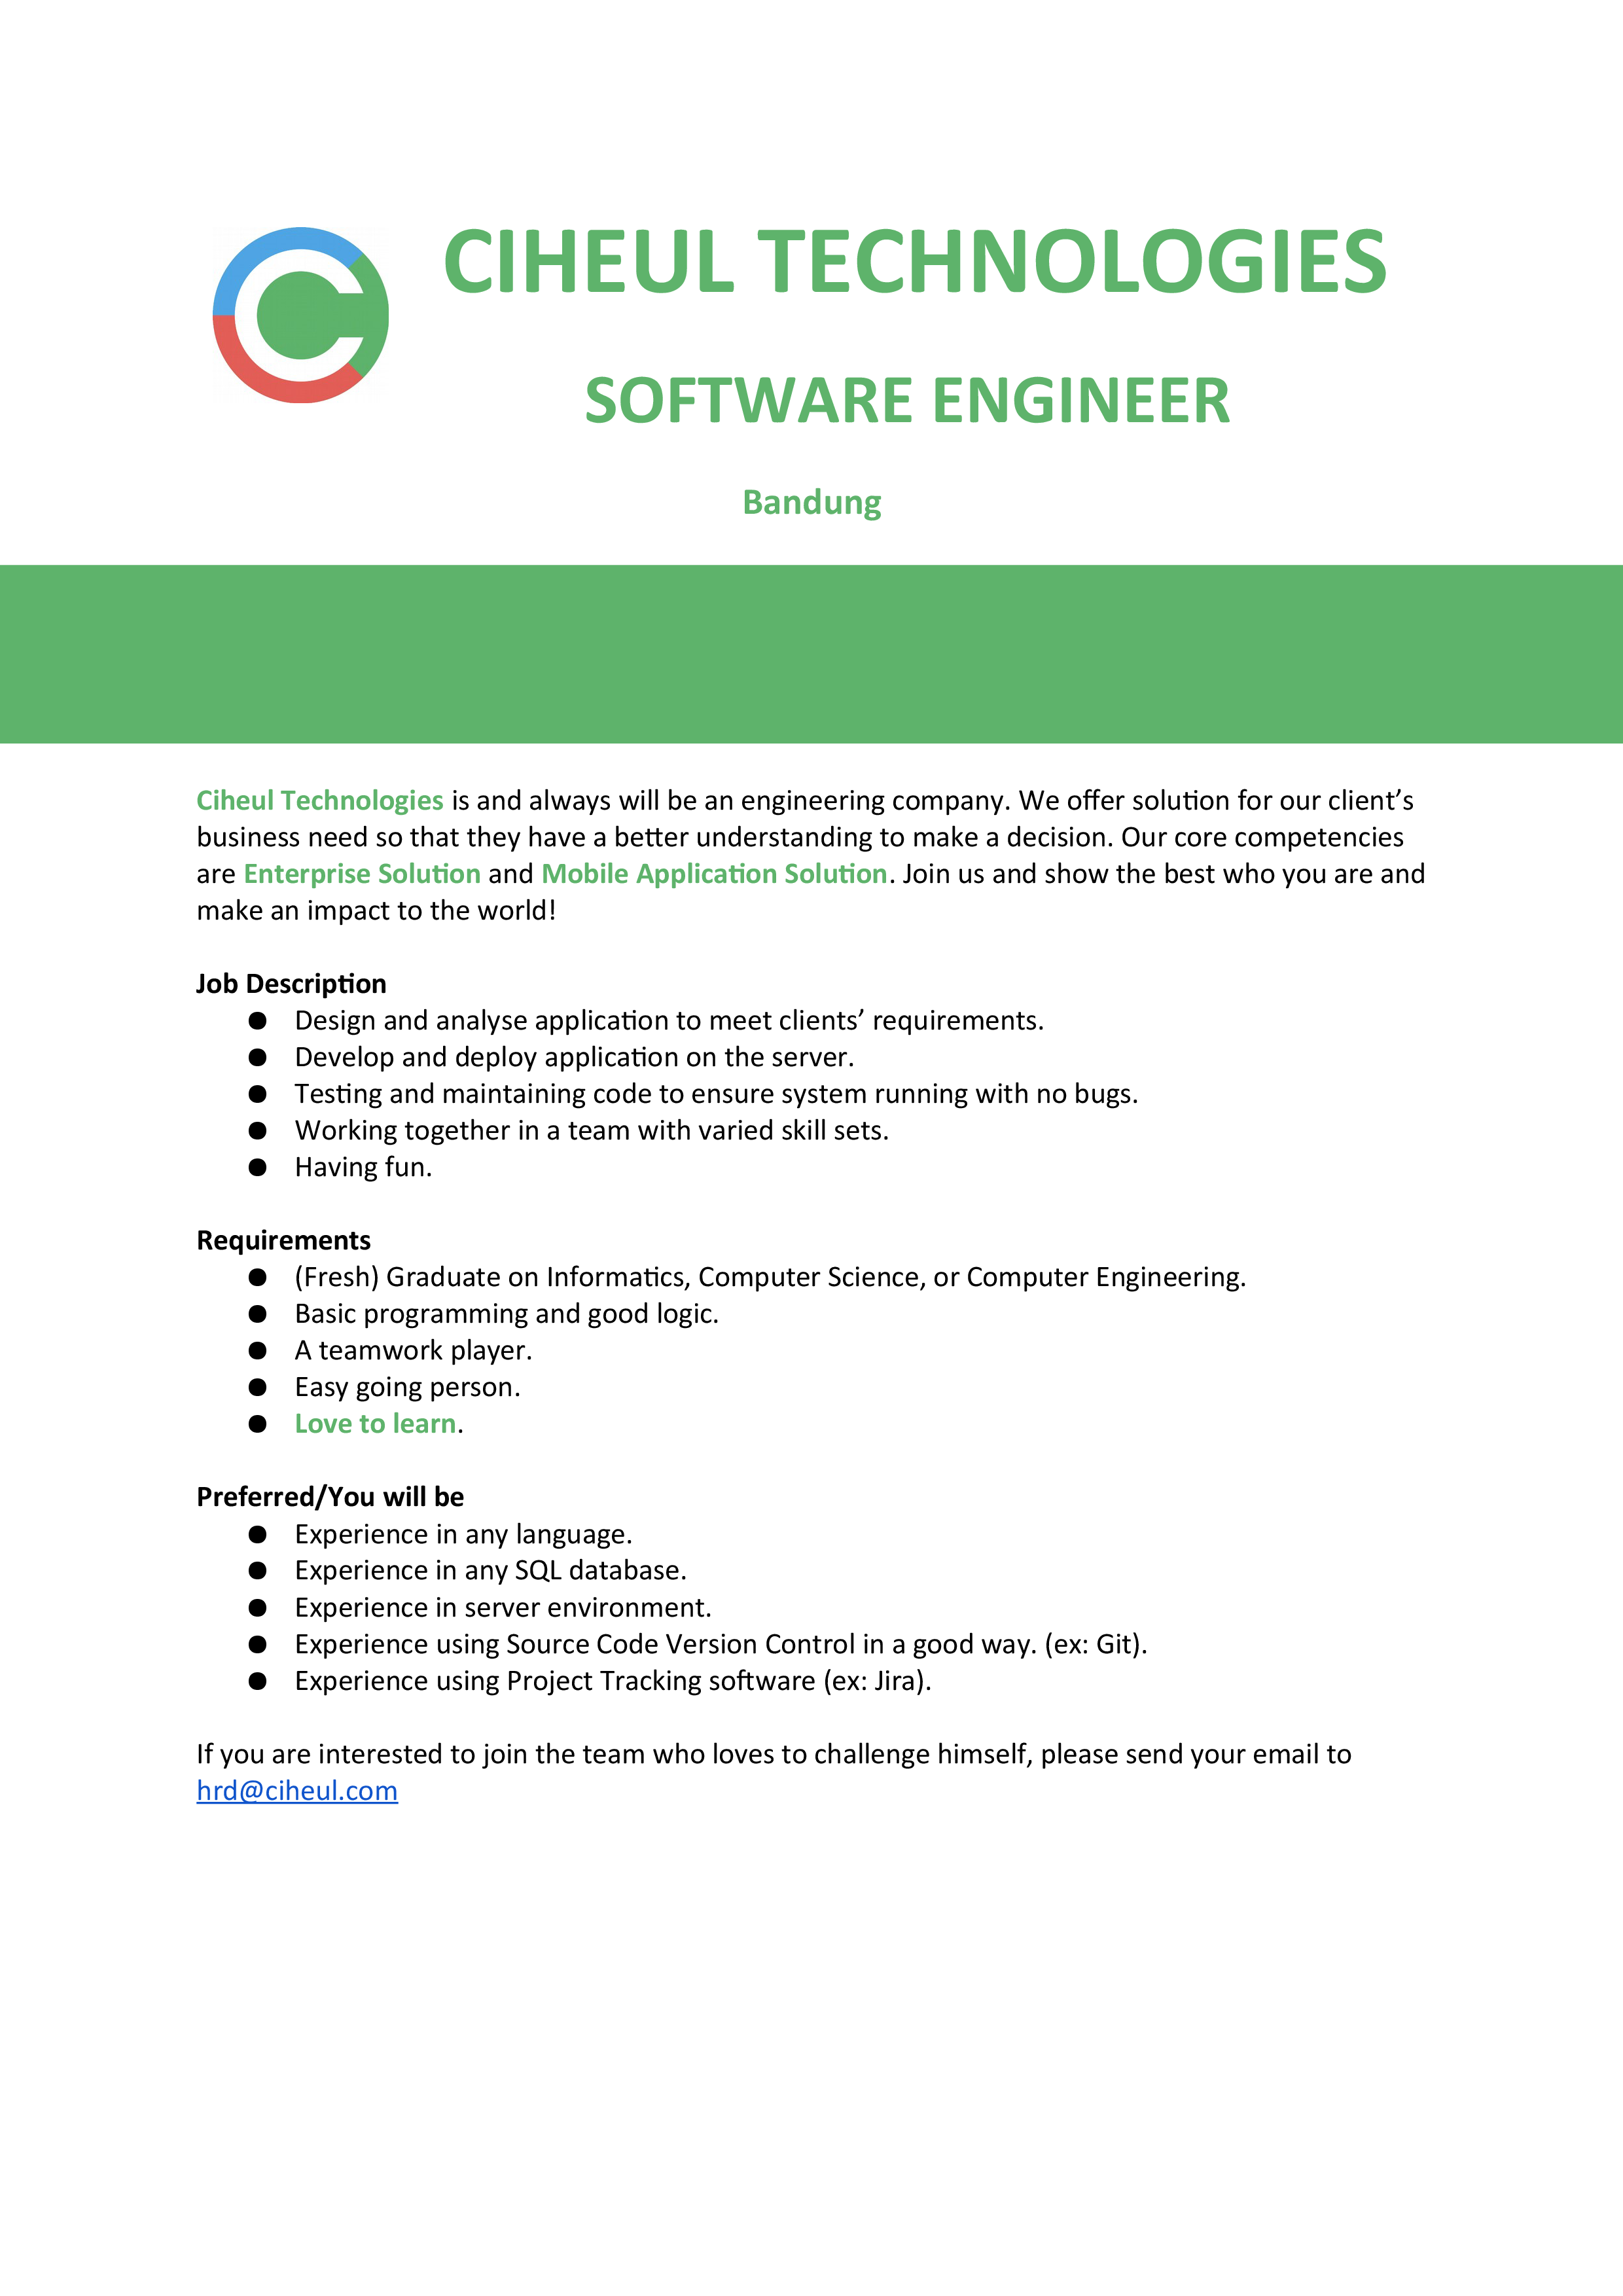 ciheul-technologies-softwarengineer-page-0.png